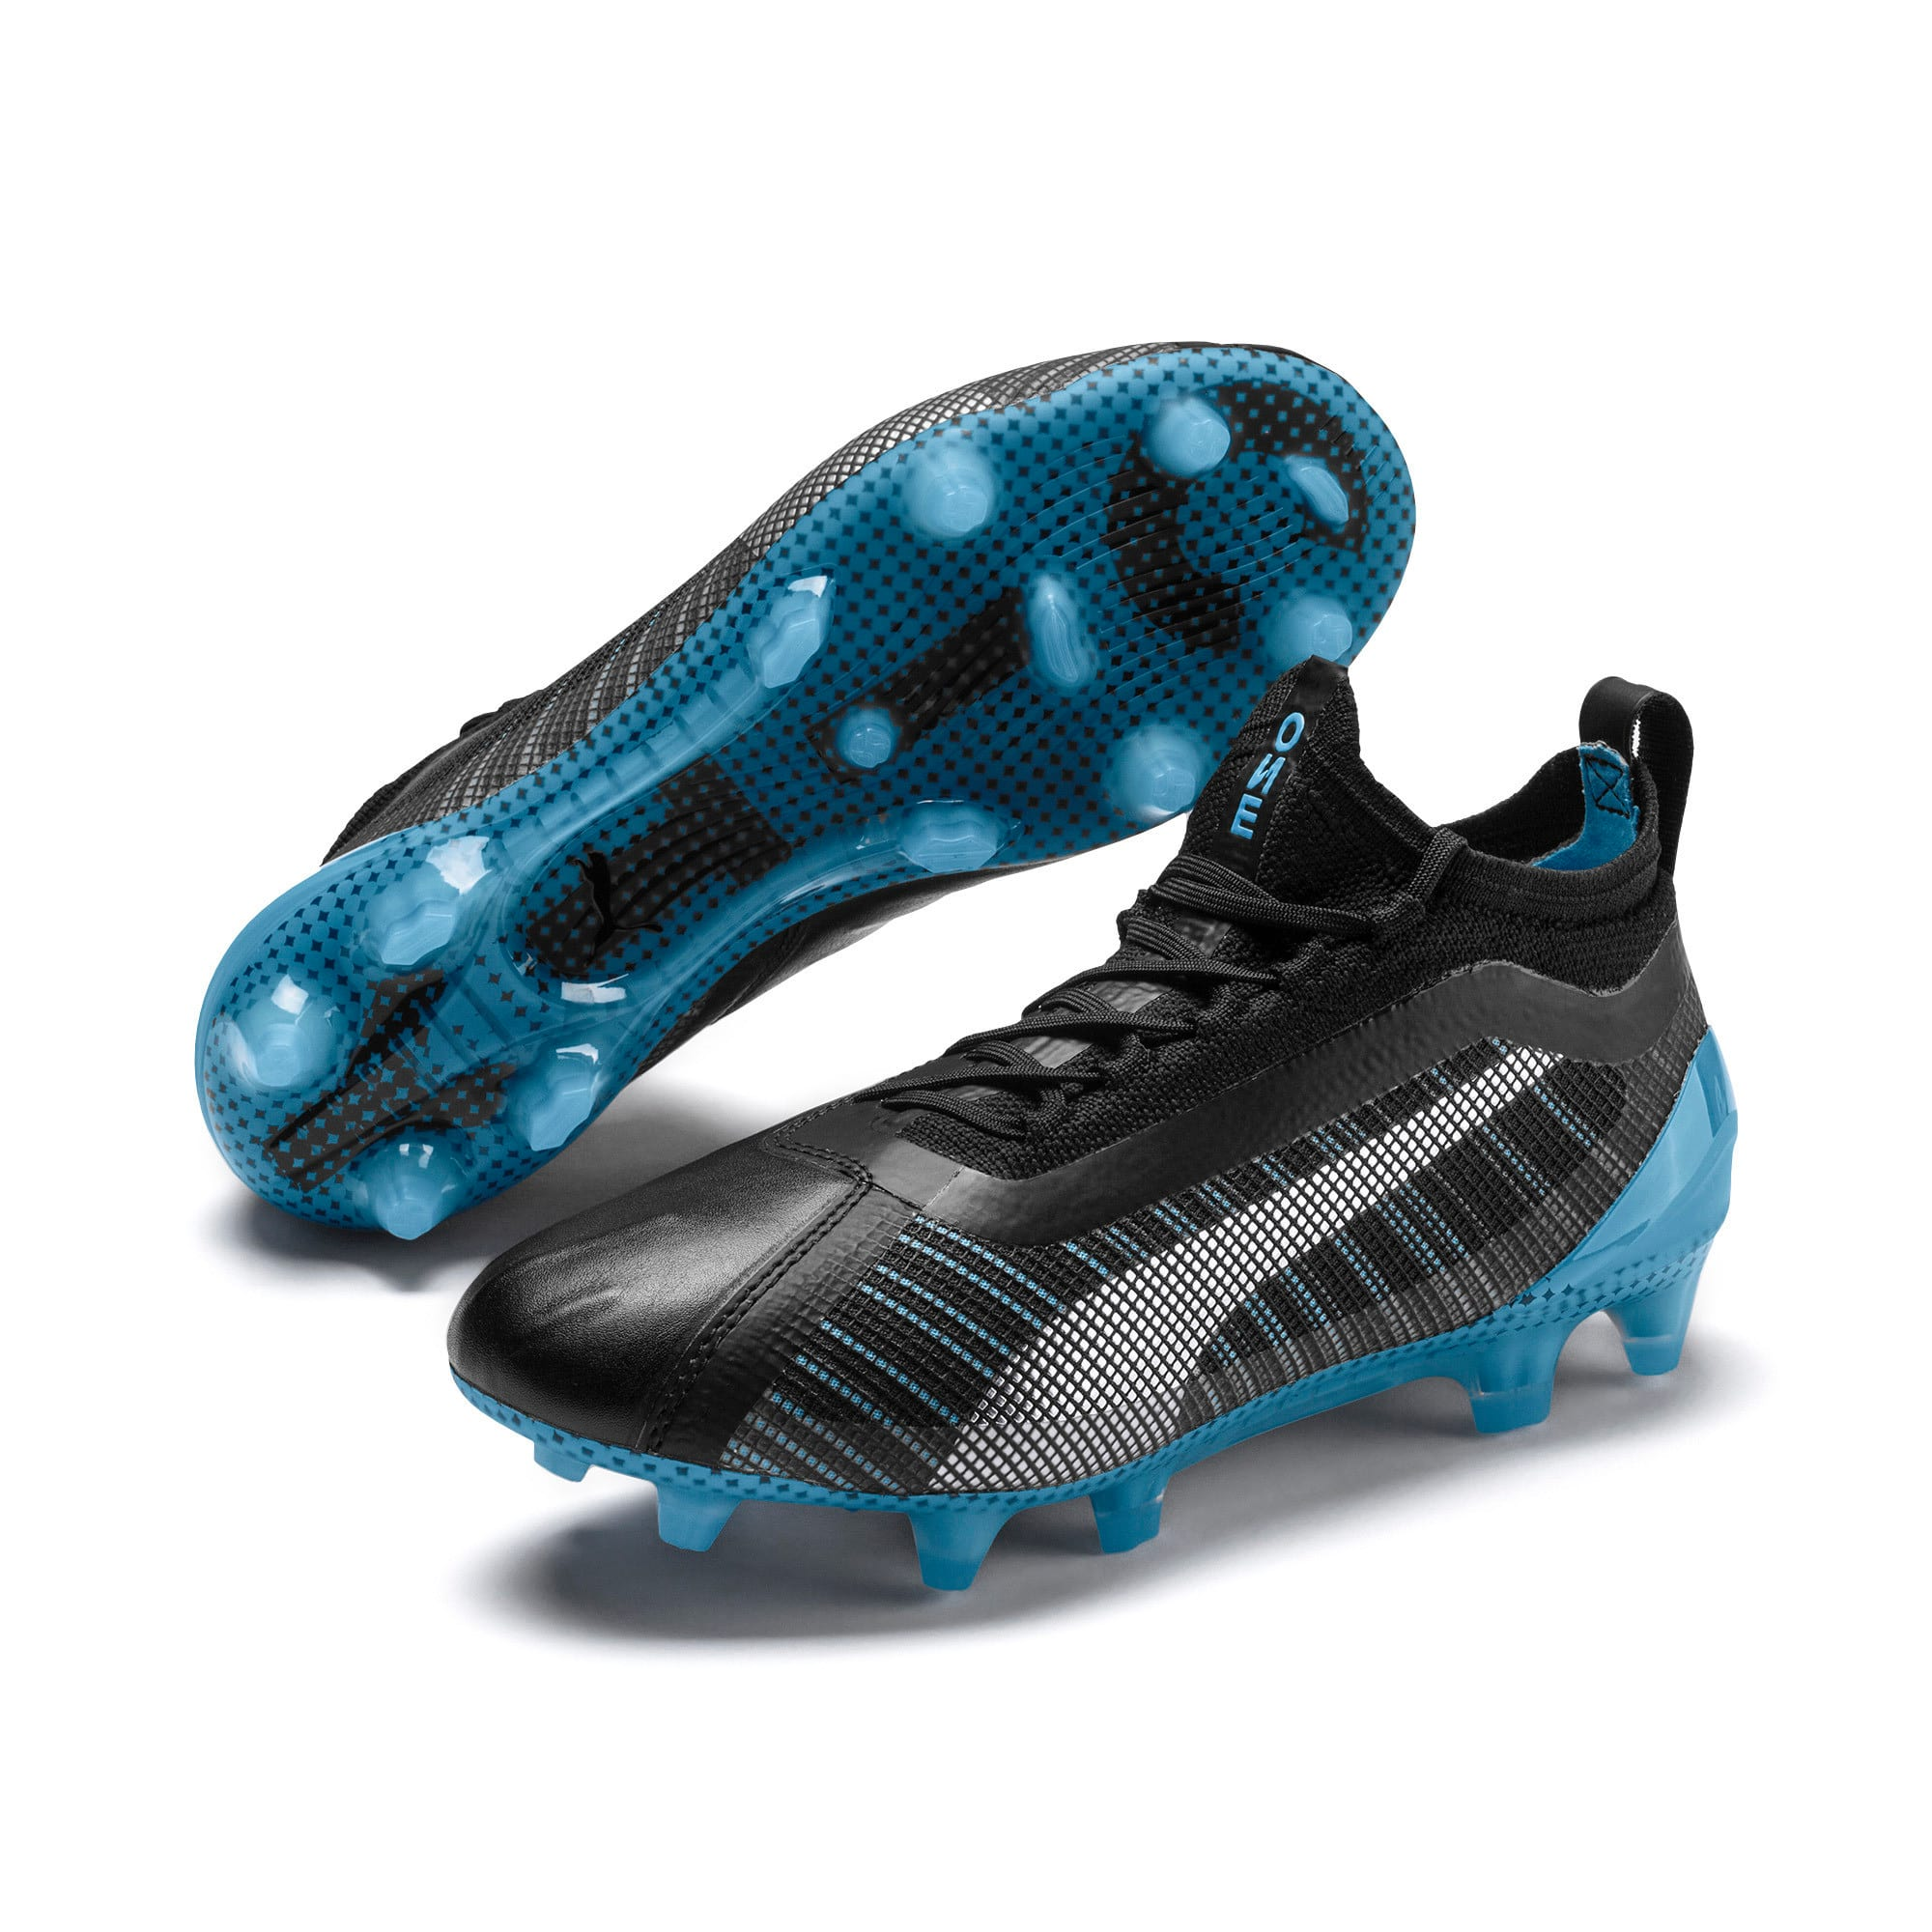 Imagen en miniatura 2 de Botas de fútbol PUMA ONE 5.1 City Youth, Black-Sky Blue-Puma White, mediana